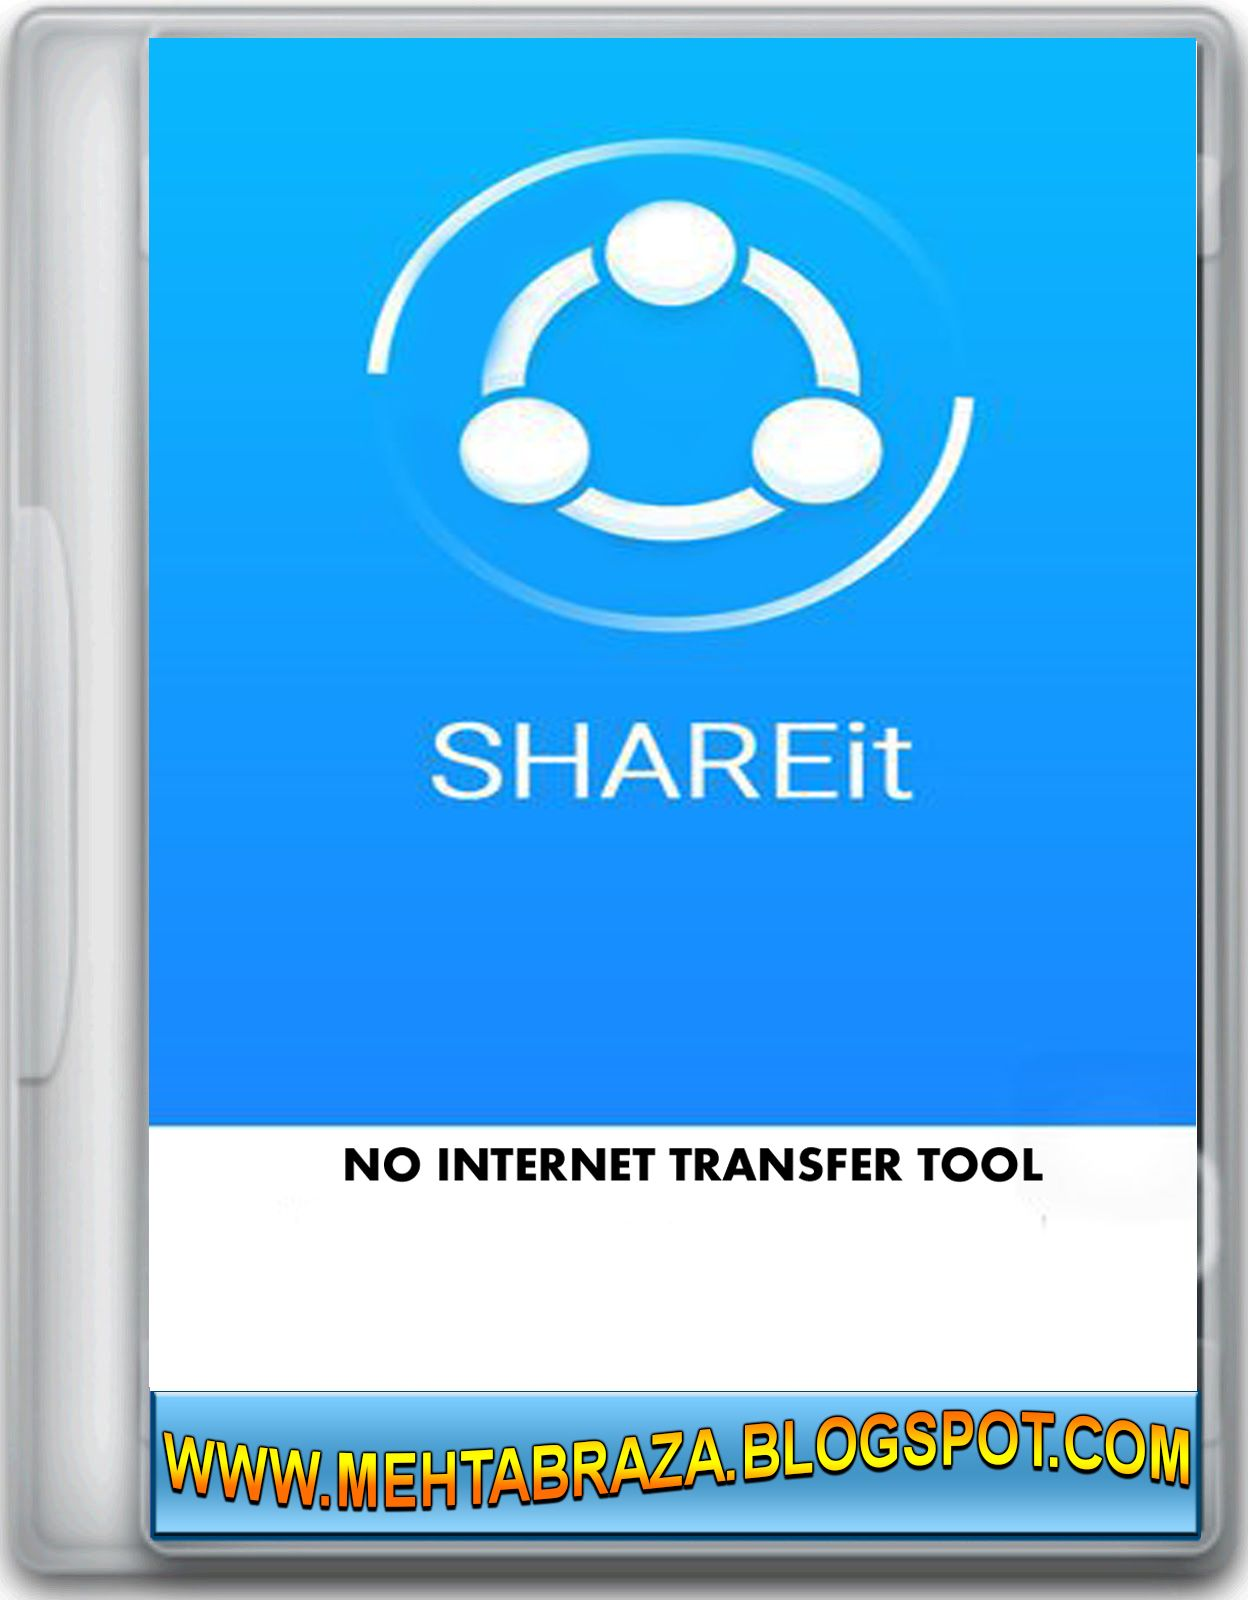 shareit apps download for windows 8.1 laptop